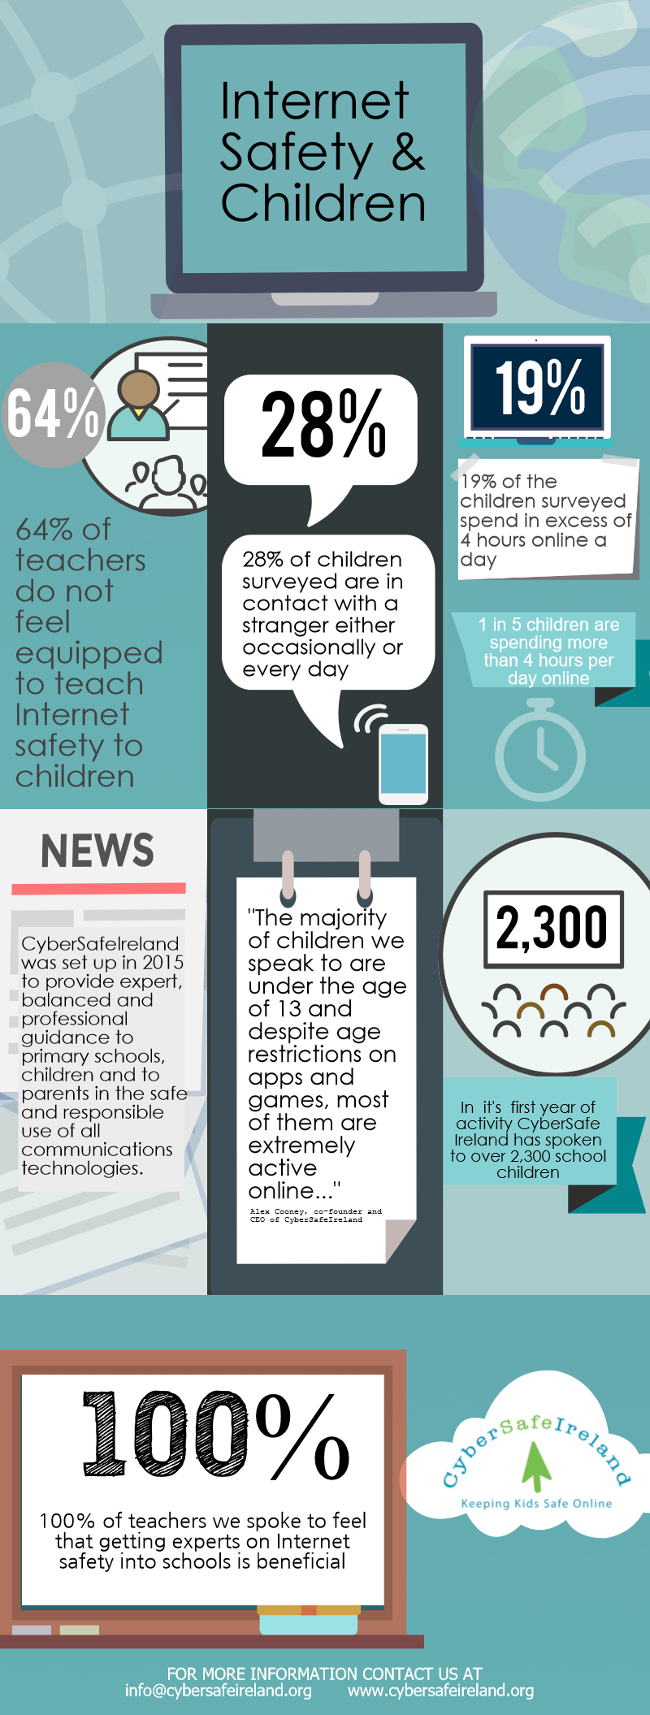 CyberSafeIreland report infographic